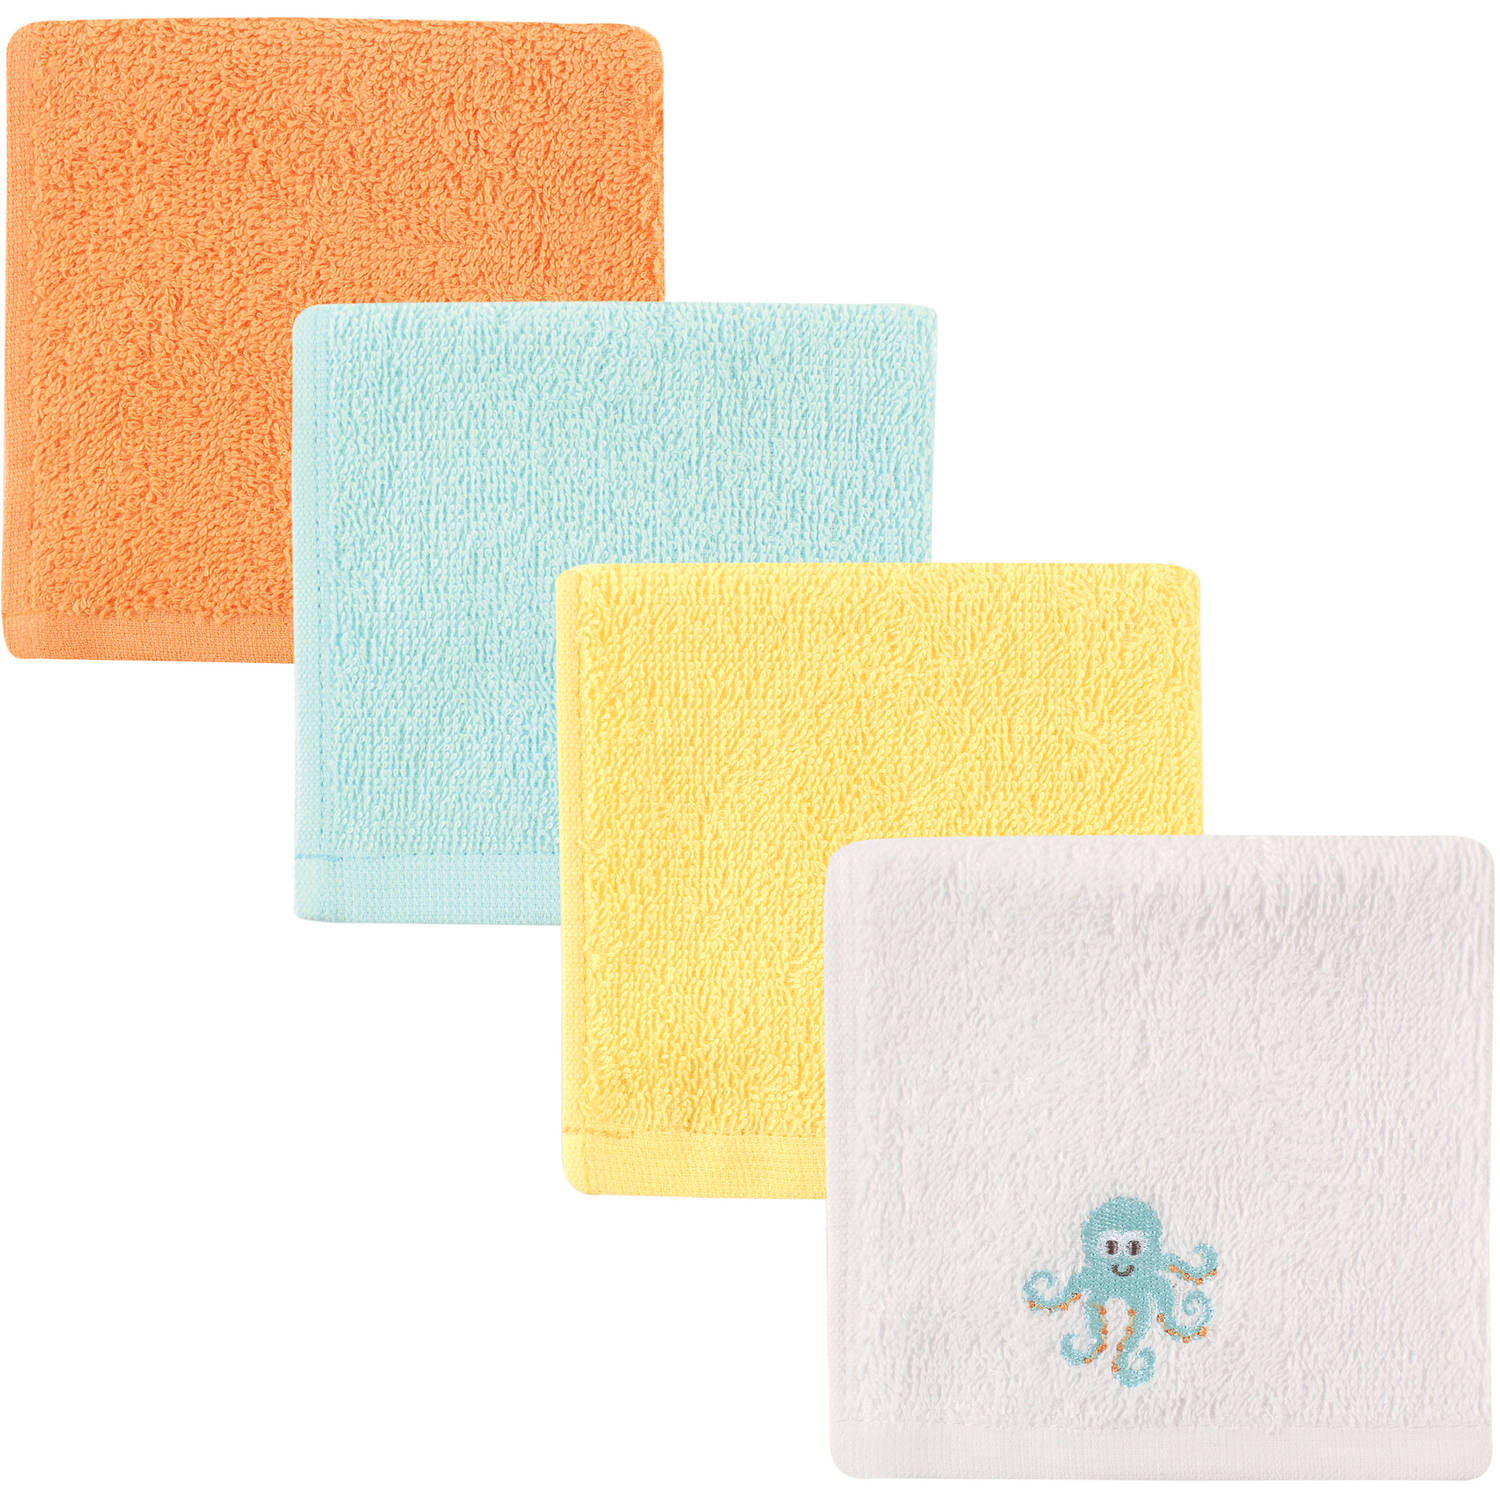 Luvable Friends Washcloth Woven Terry, 4pk, Octopus